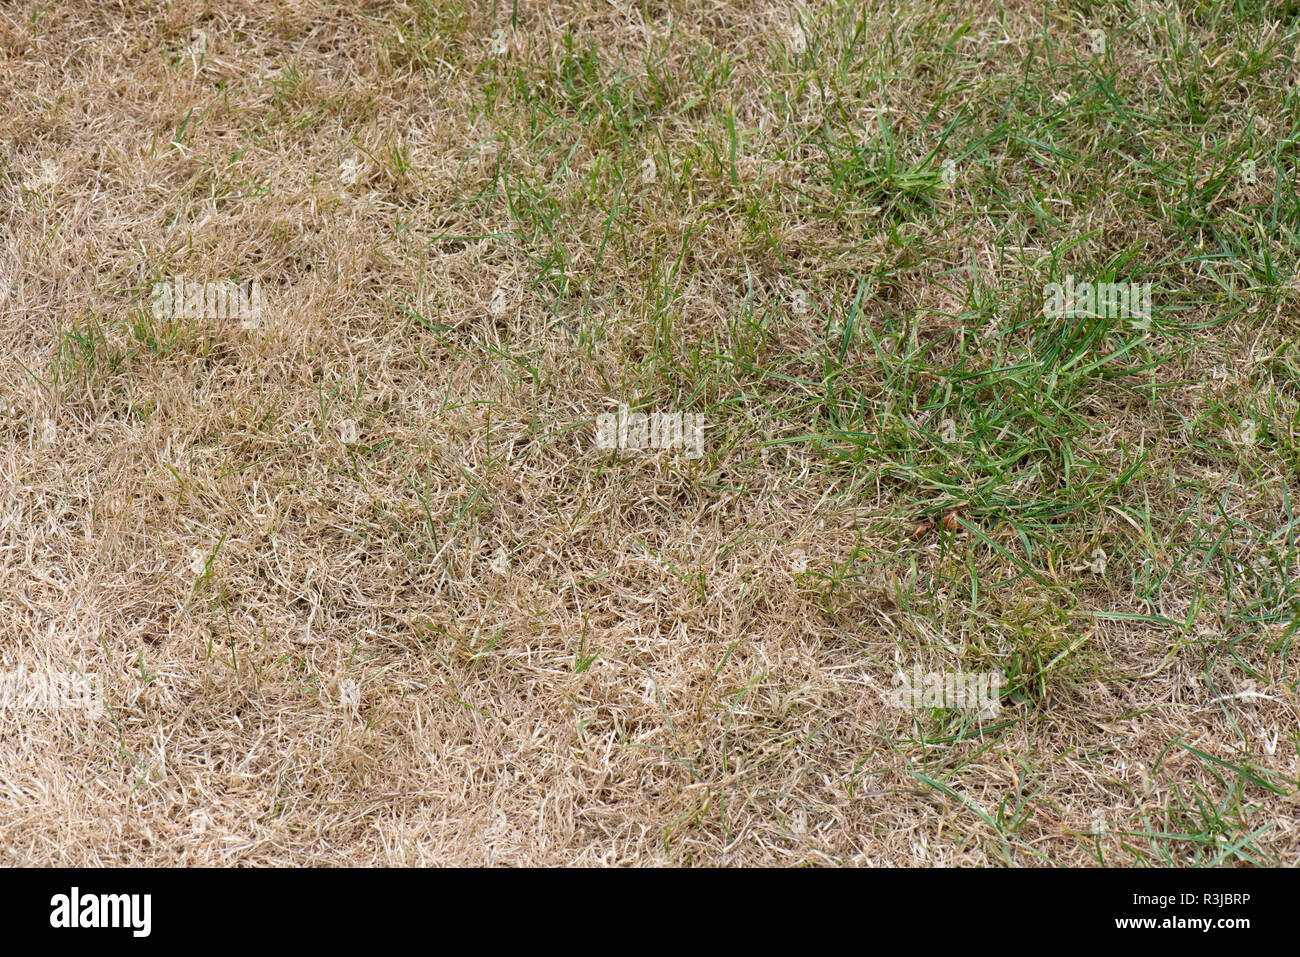 Parched, brown and dry garden lawn grass in a hot summer drought, Berkshire, July - Stock Image